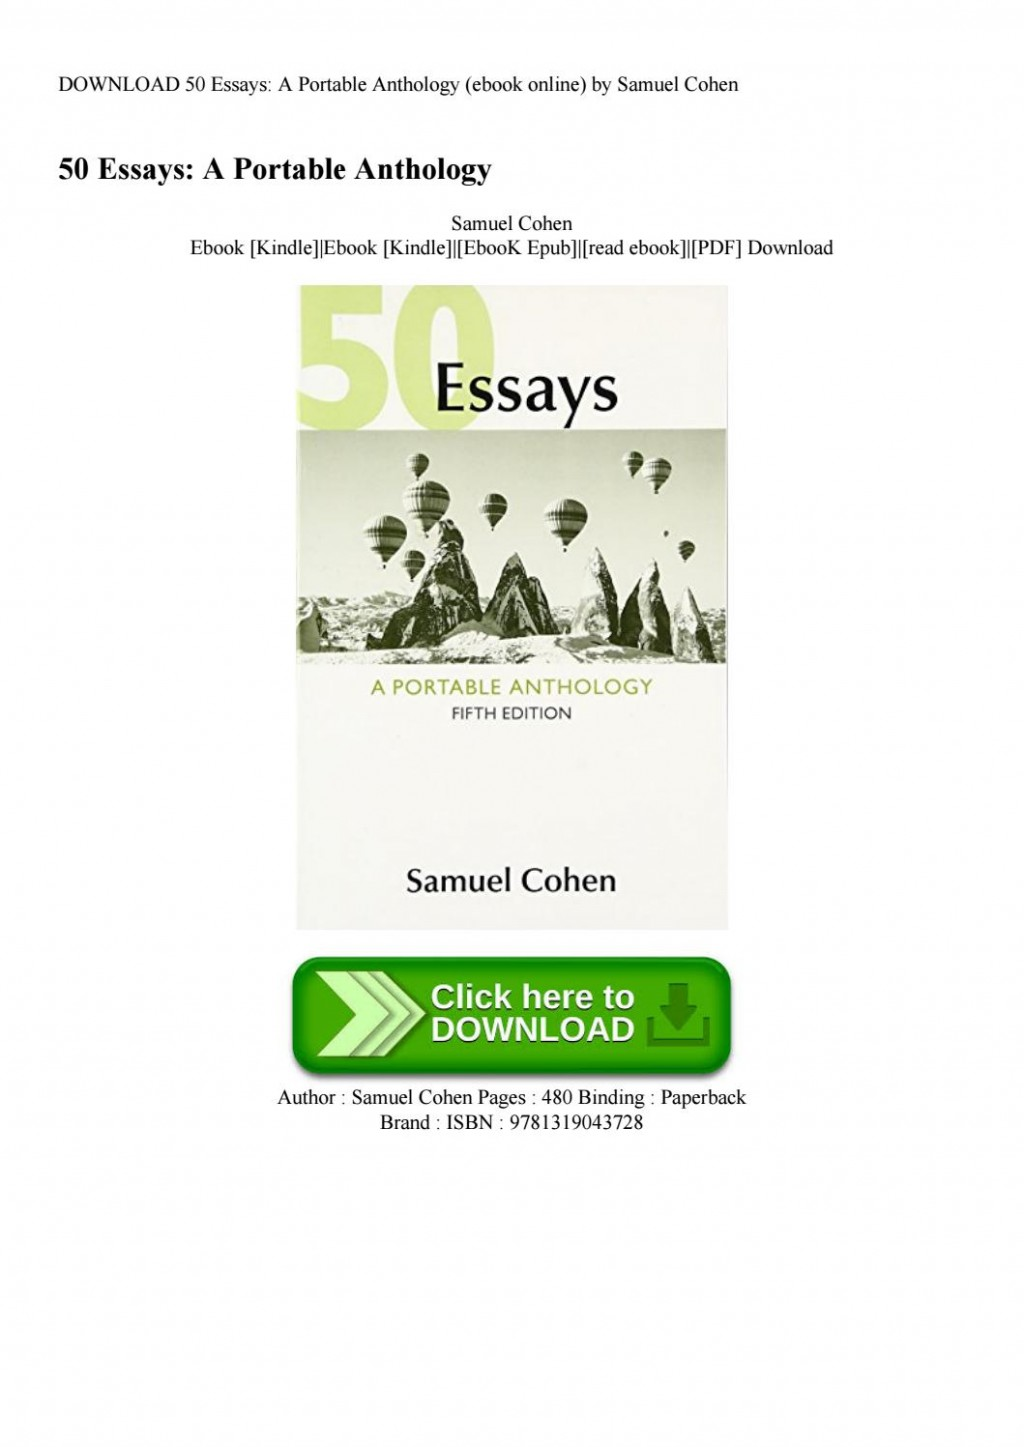 009 Essays Portable Anthology 5th Edition Pdf Page 1 Essay Fascinating 50 A Large